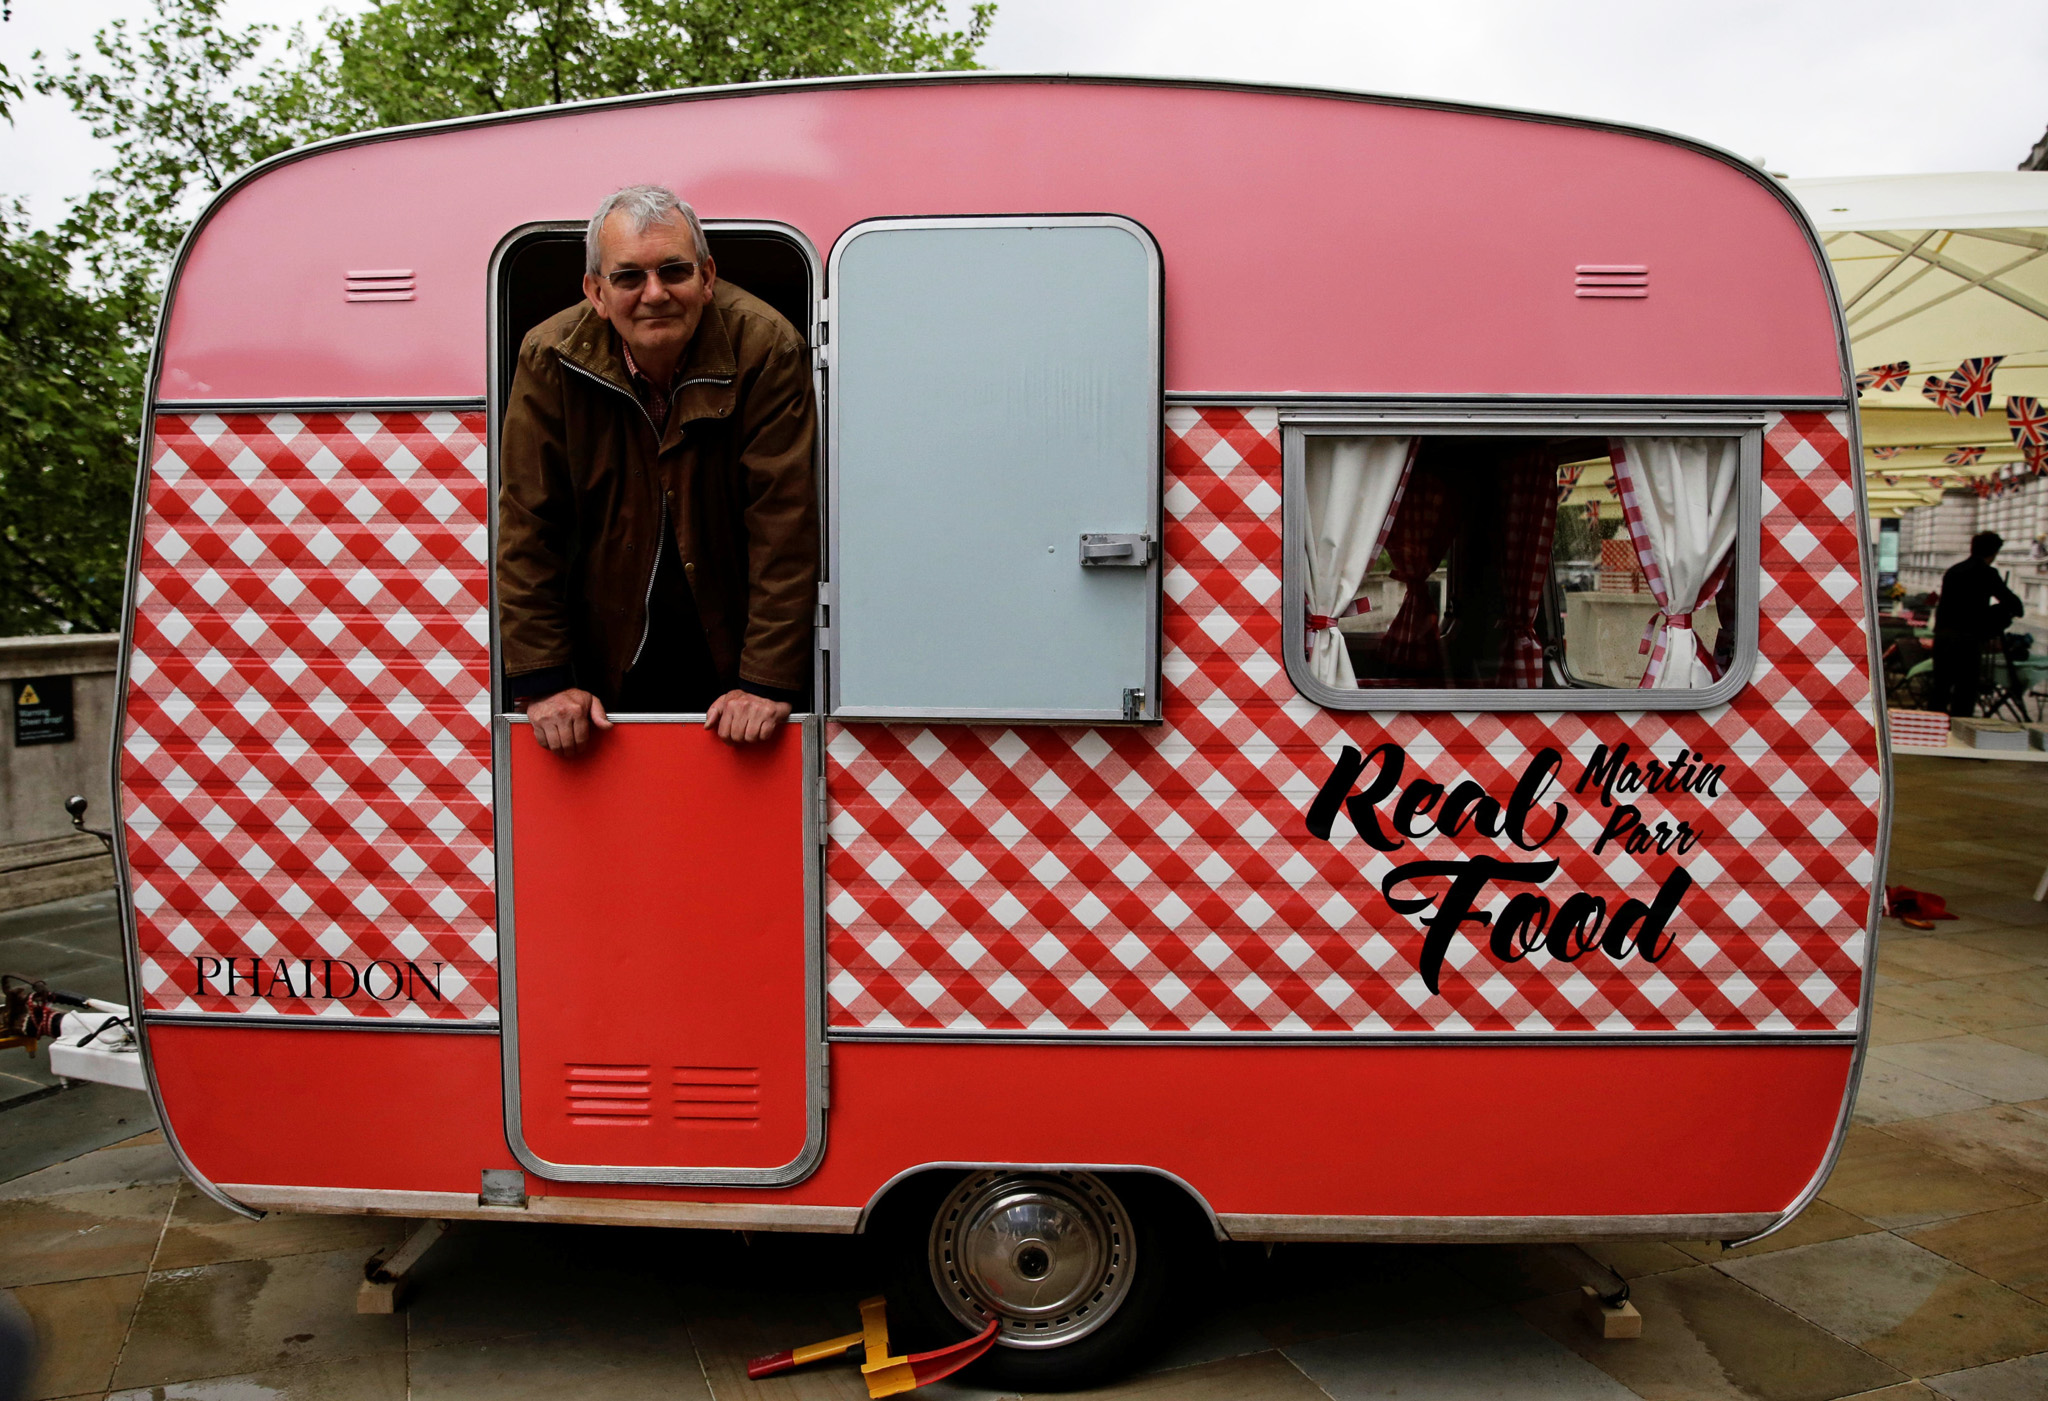 Photographer Martin Parr looks out from his own caravan which is serving food at the Photo London show in London, Britain, May 18, 2016